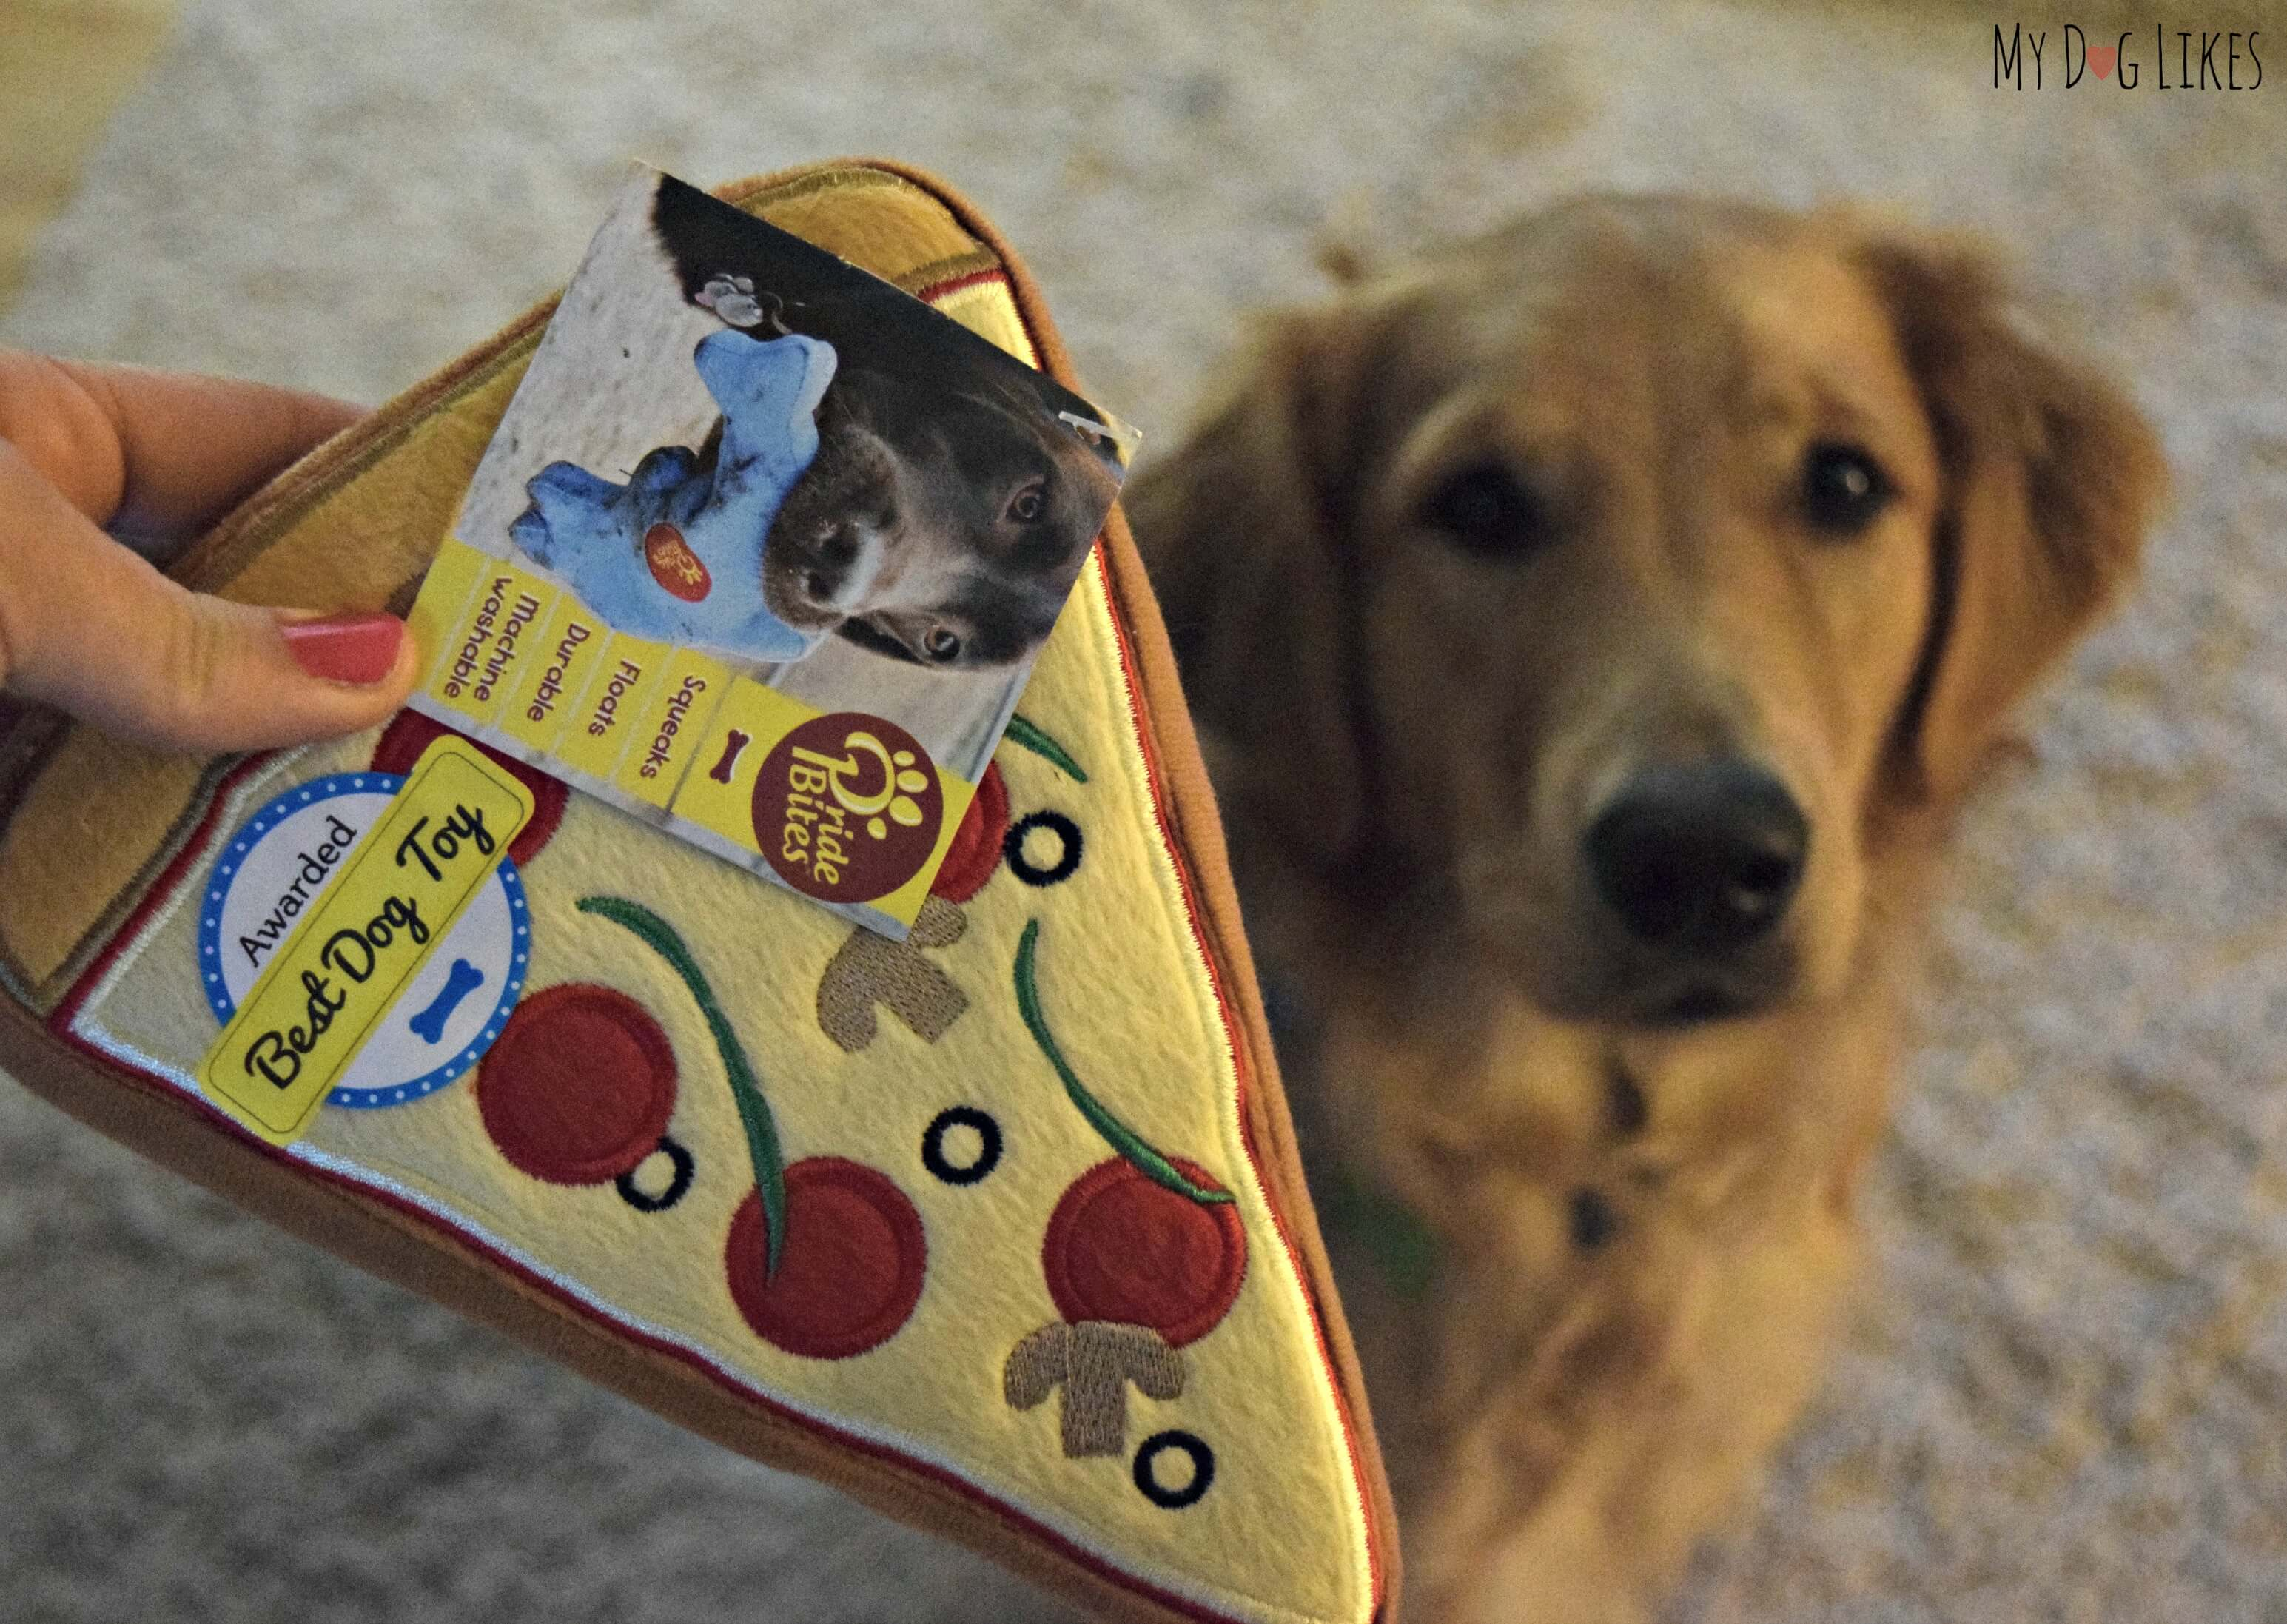 Pridebites Dog Toy Review - It's a Puppy Pizza-Palooza!